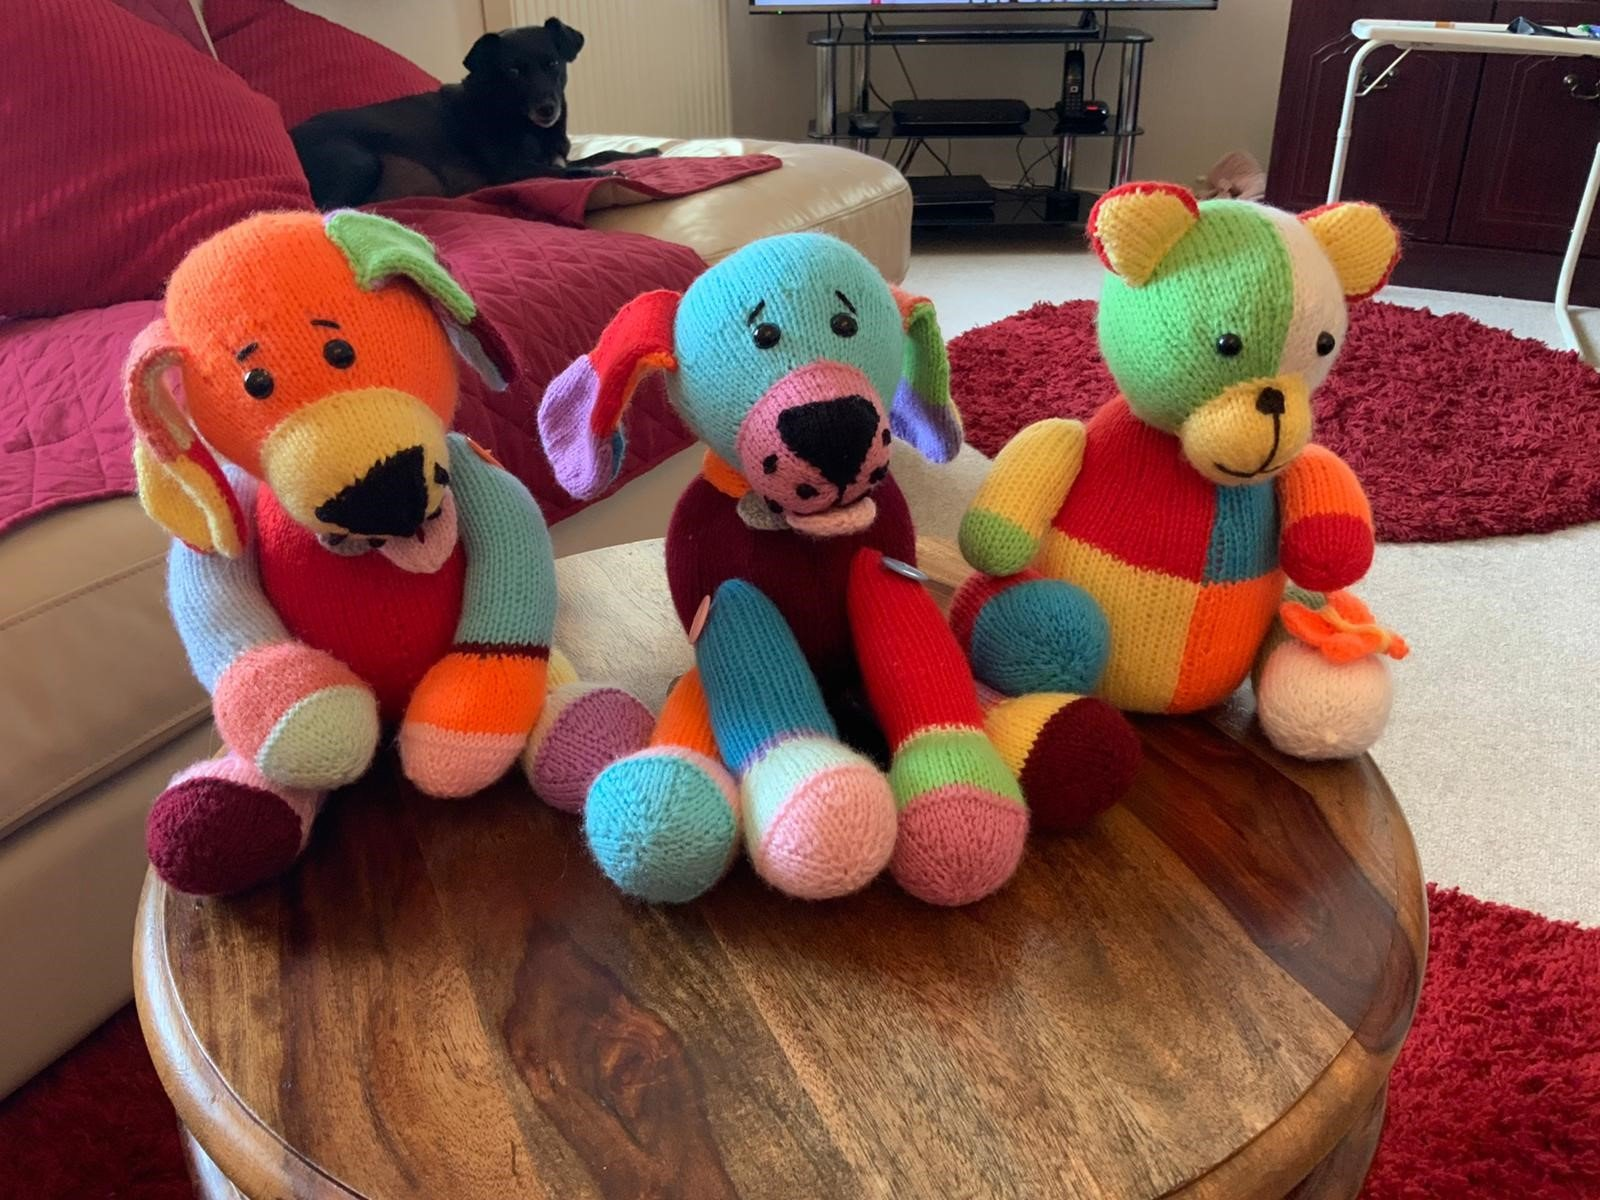 3 Knitted teady bears sitting on coffee table